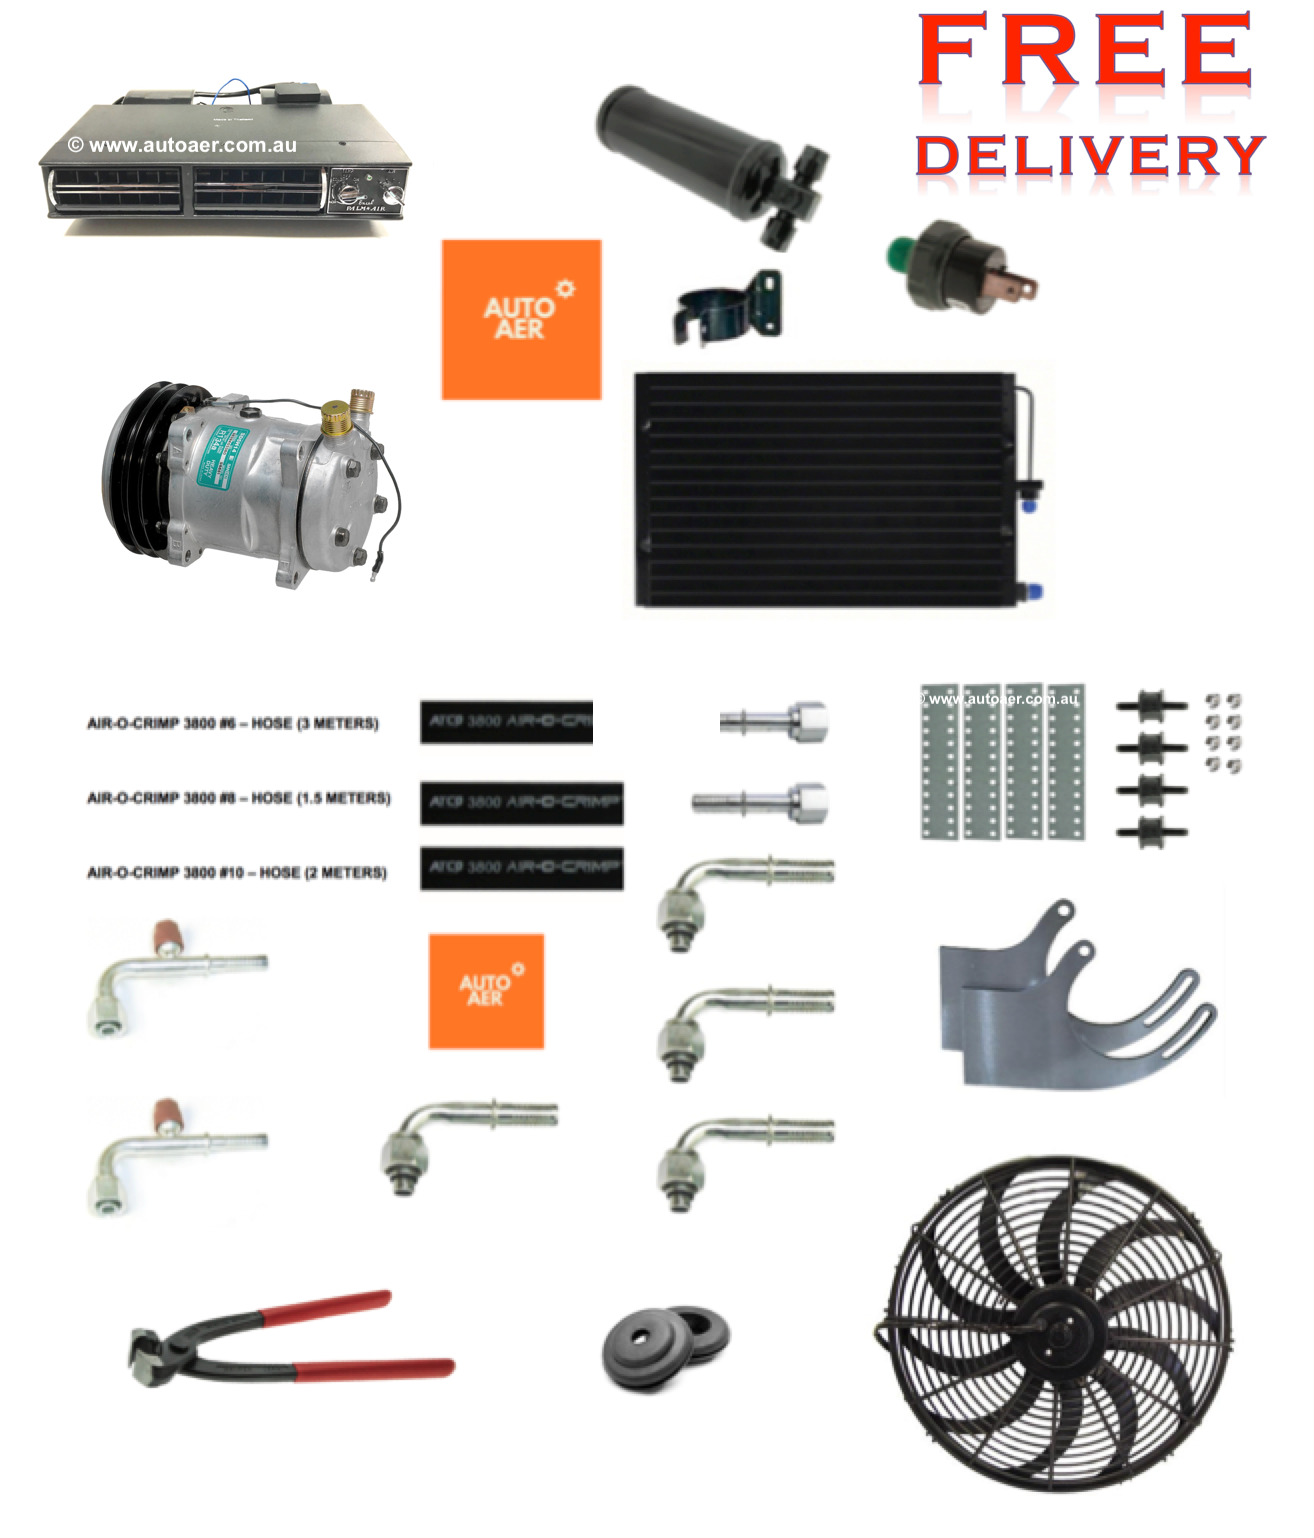 COMPLETE UNDER DASH AIR CONDITIONING COOL ONLY - KIT 6 on